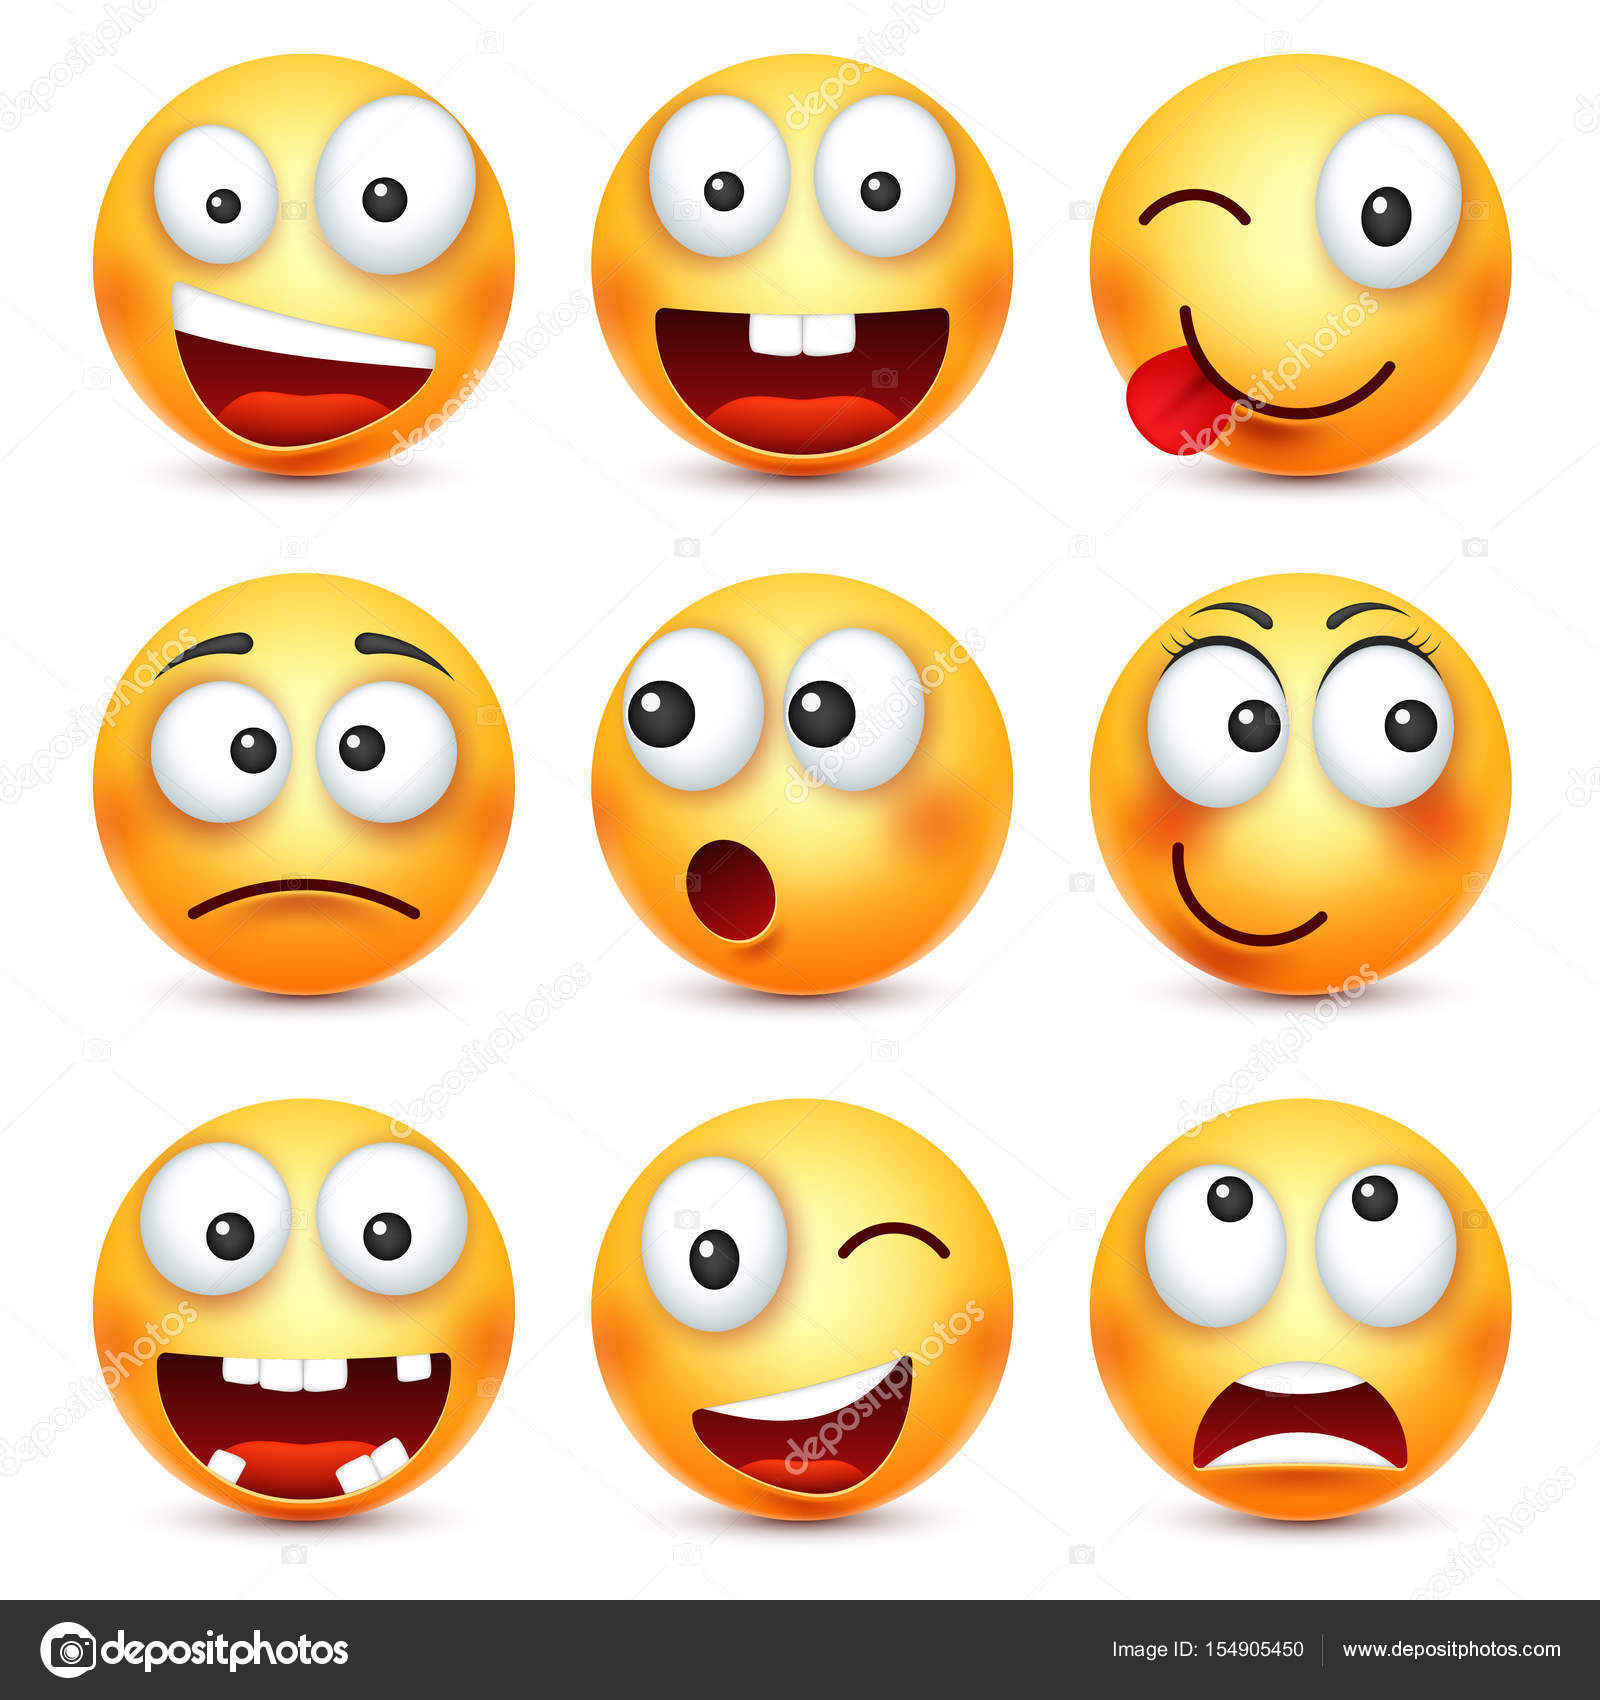 smiley,smiling angry,sad,happy emoticon. yellow face with emotions